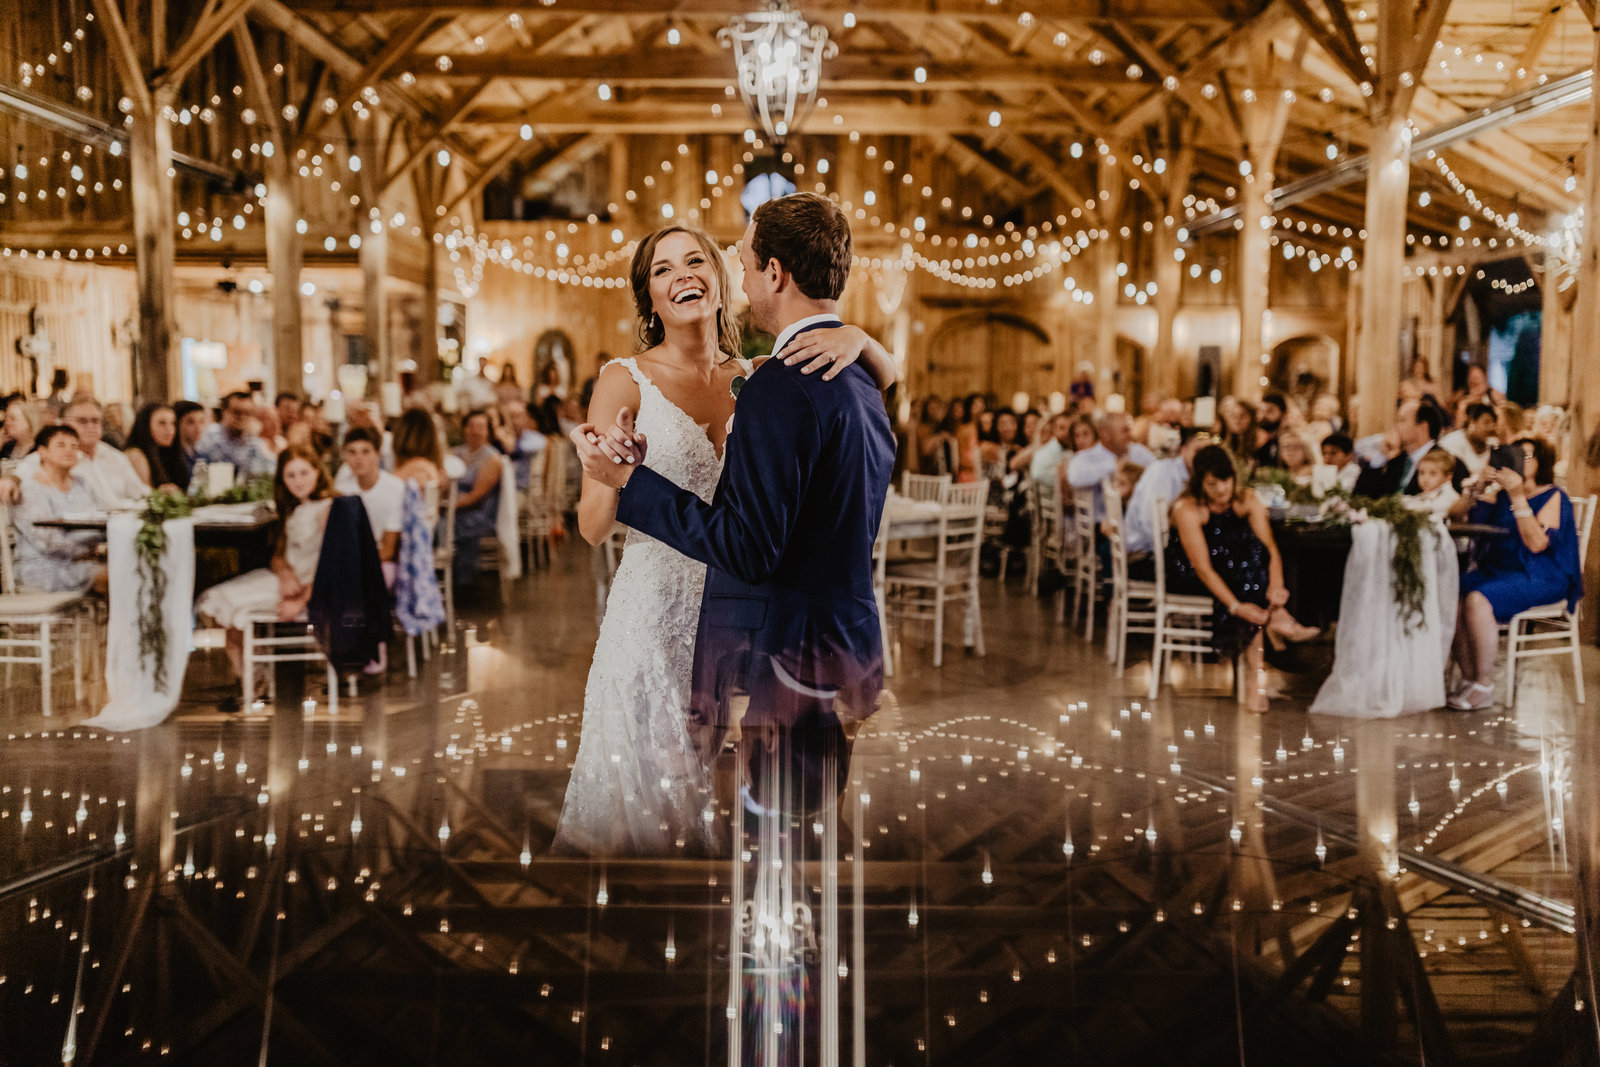 Bride and Groom enjoying their first dance with epic reflection of string lights at Cason's Cove